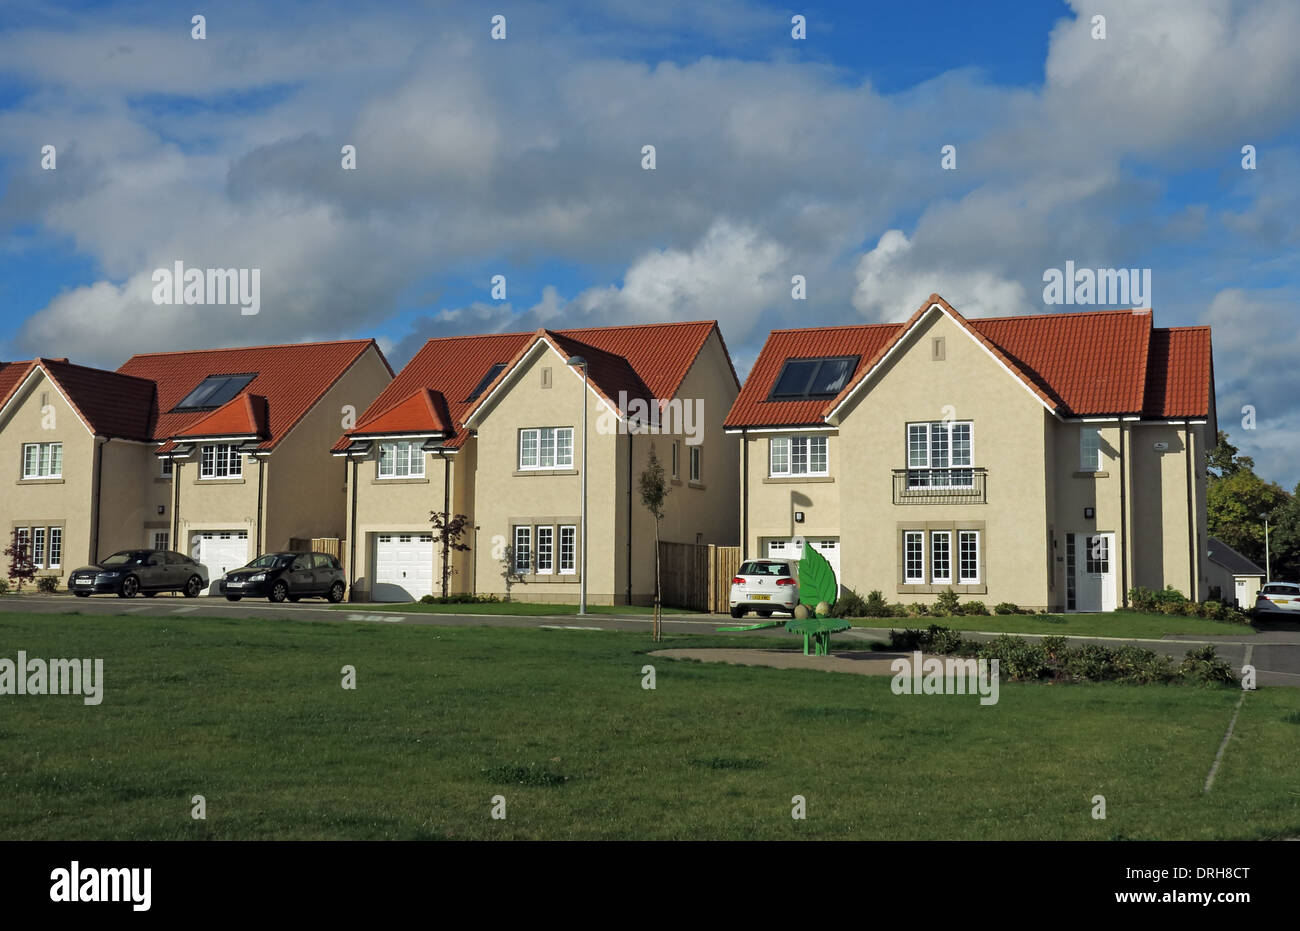 New build houses on an estate Eskbank, near Dalkeith Edinburgh Midlothian Scotland - Stock Image